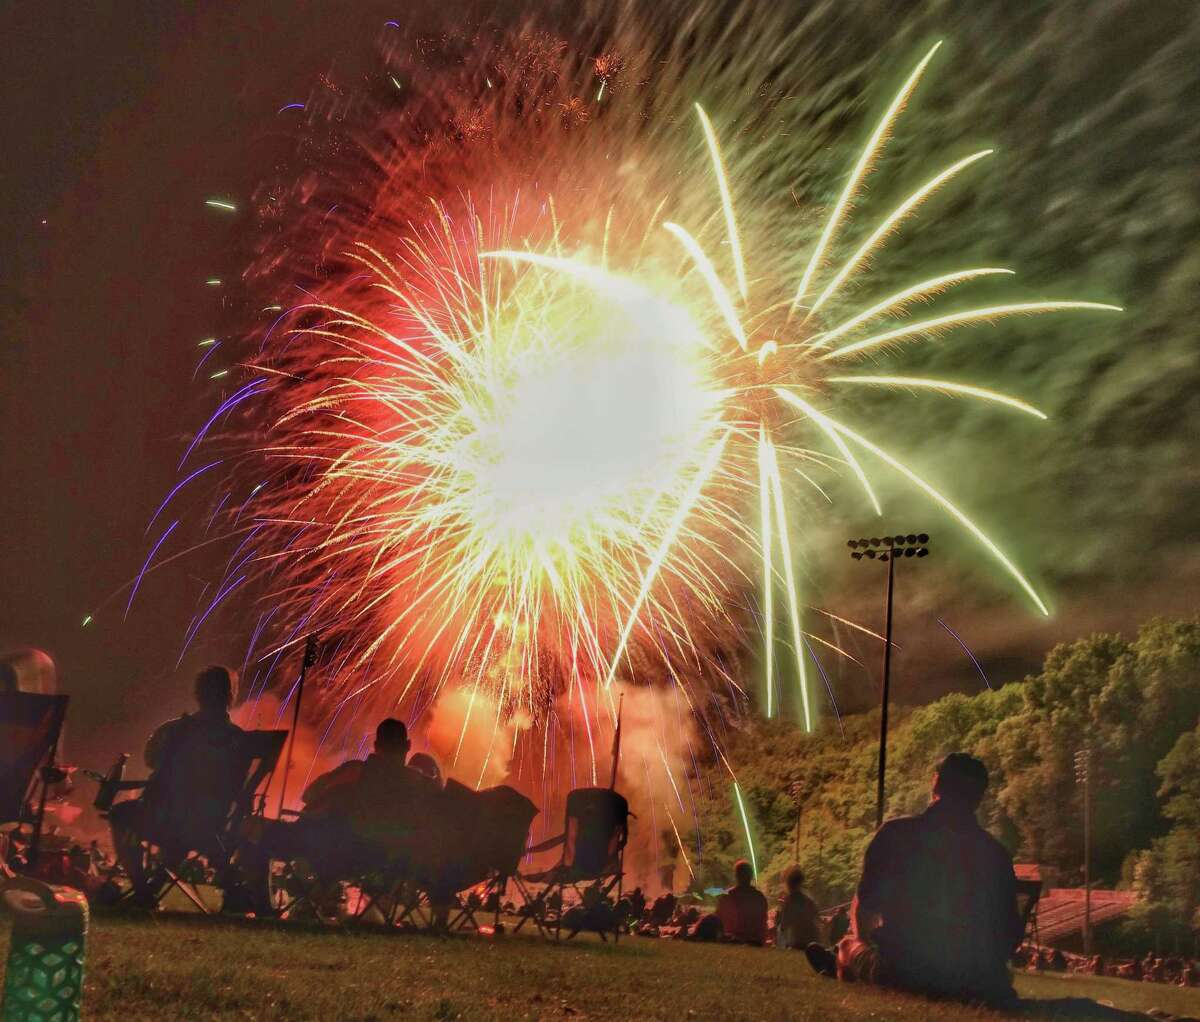 Hundreds of Wilton residents gathered to watch the town's annual fireworks display in 2019.